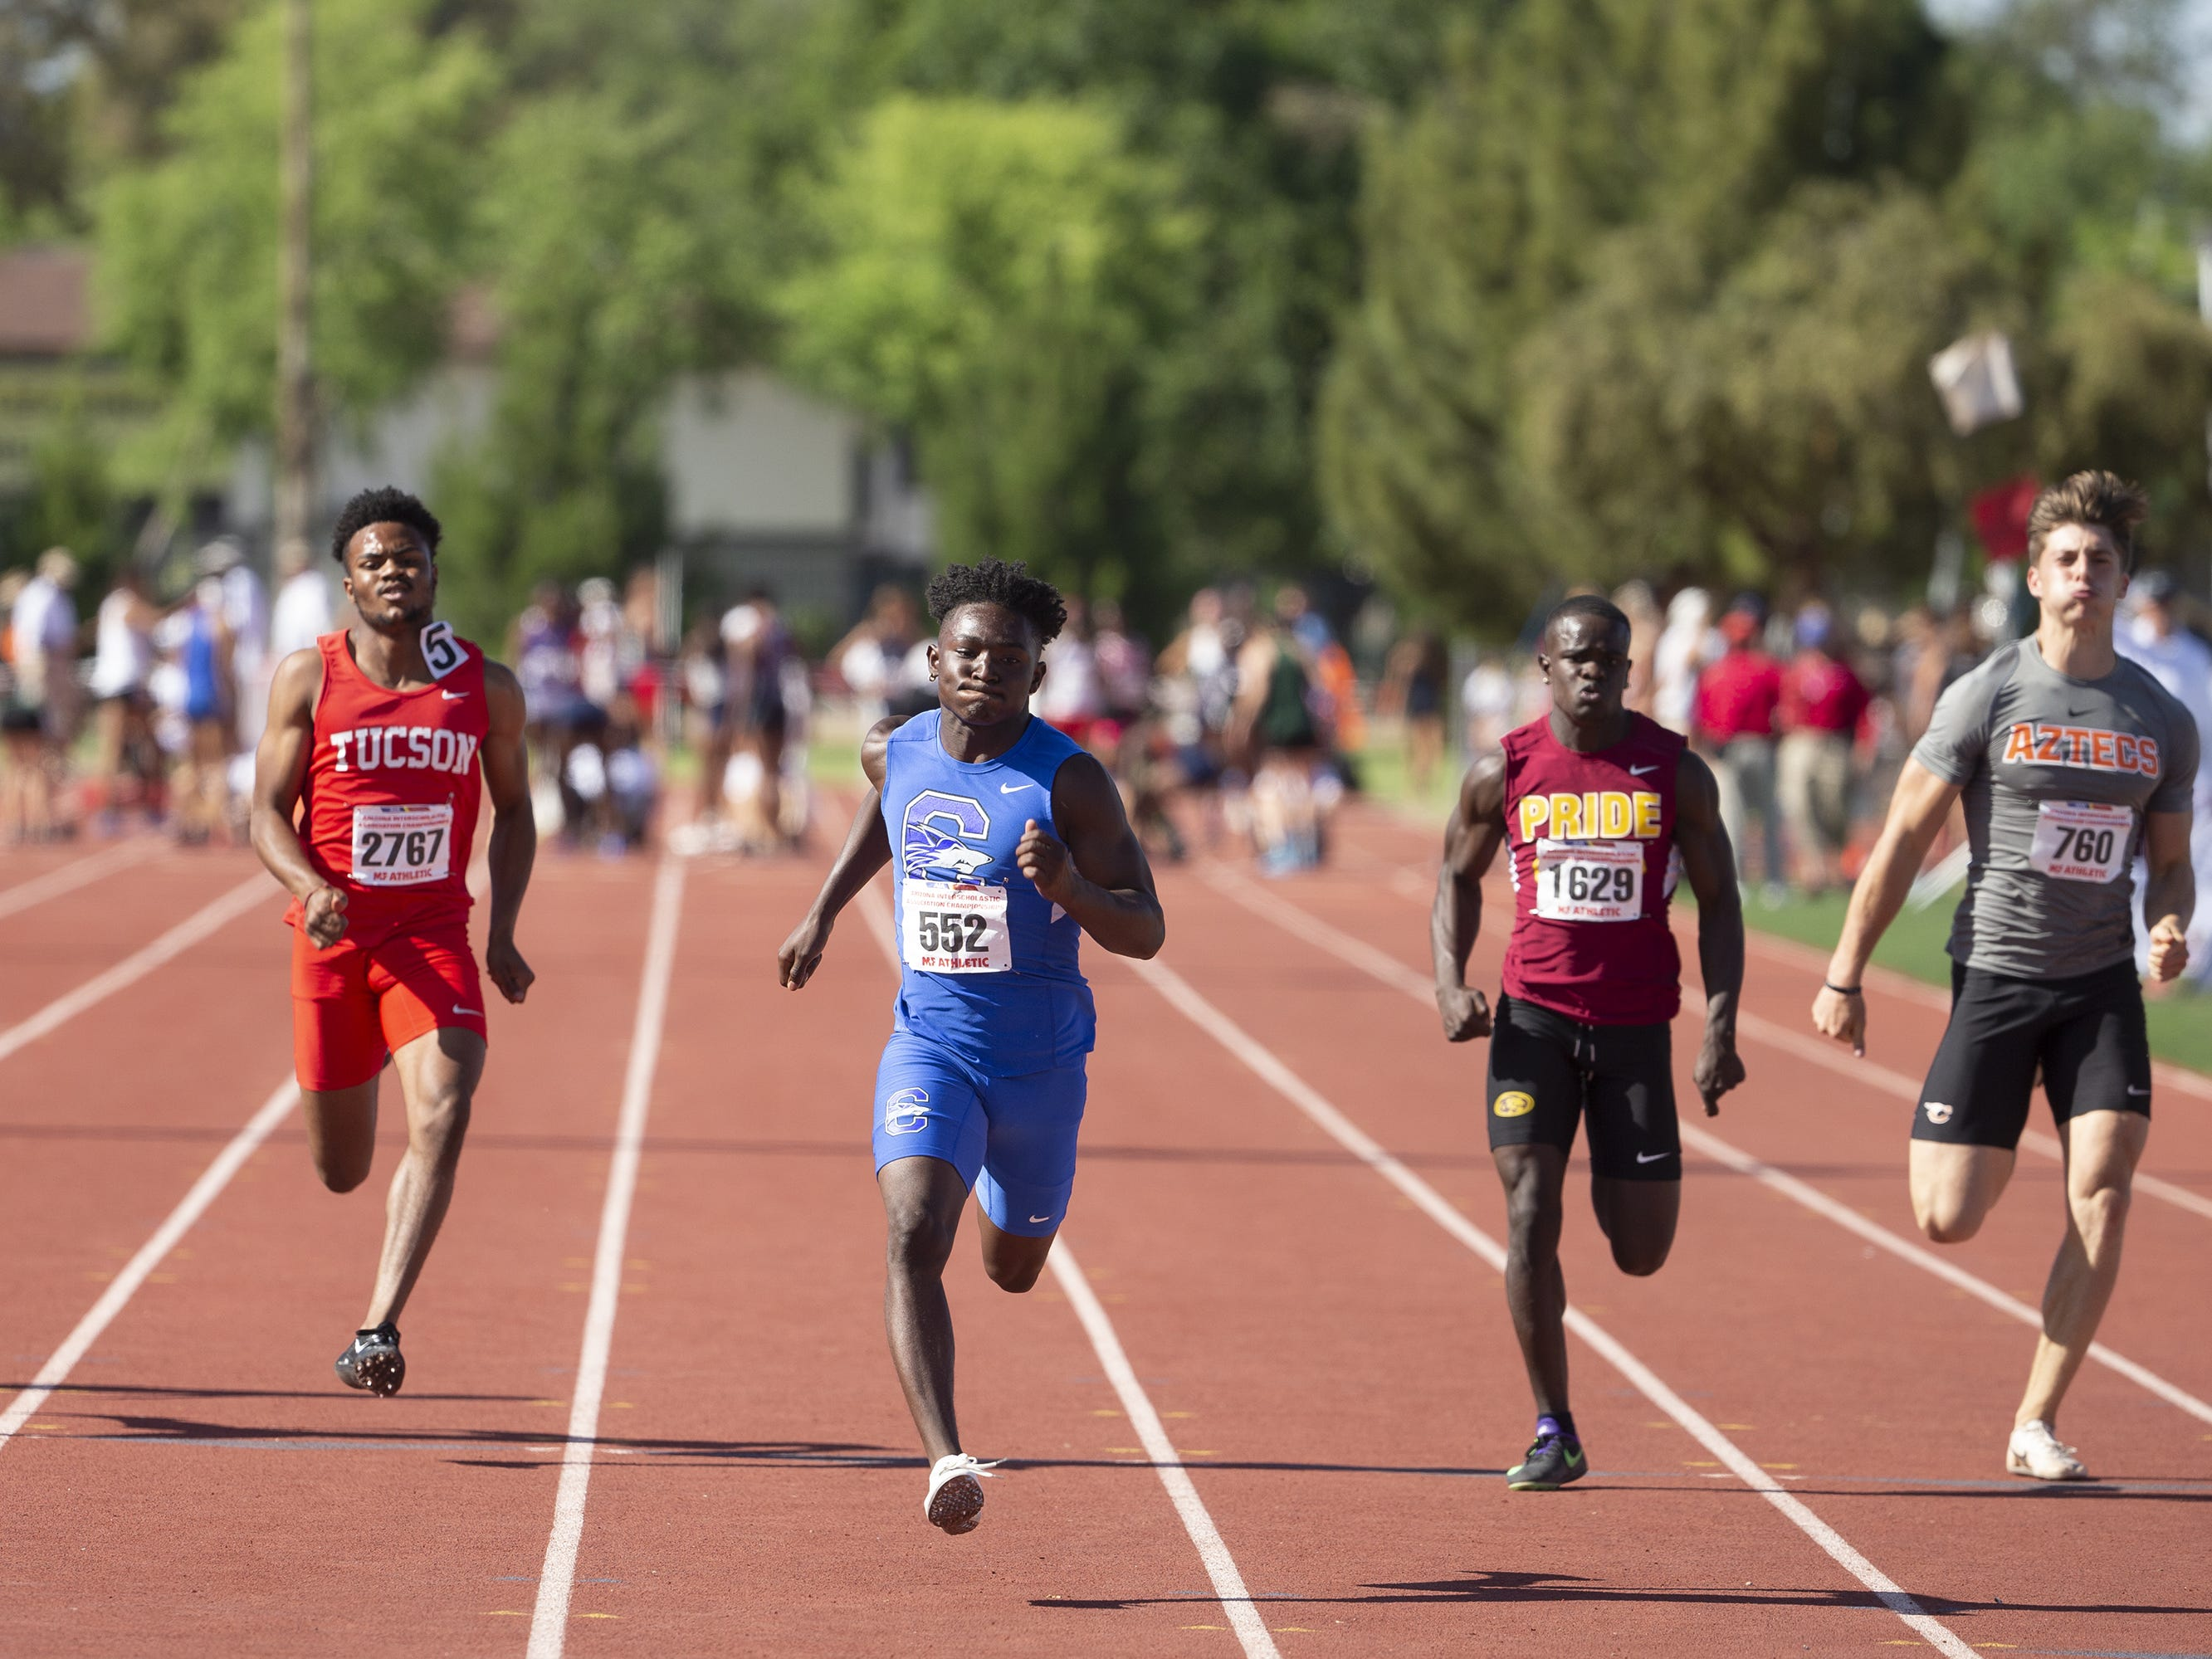 Division I Boys compete in the 100 Meter dash during the state track and field meet at Mesa Community college on May 1, 2019.